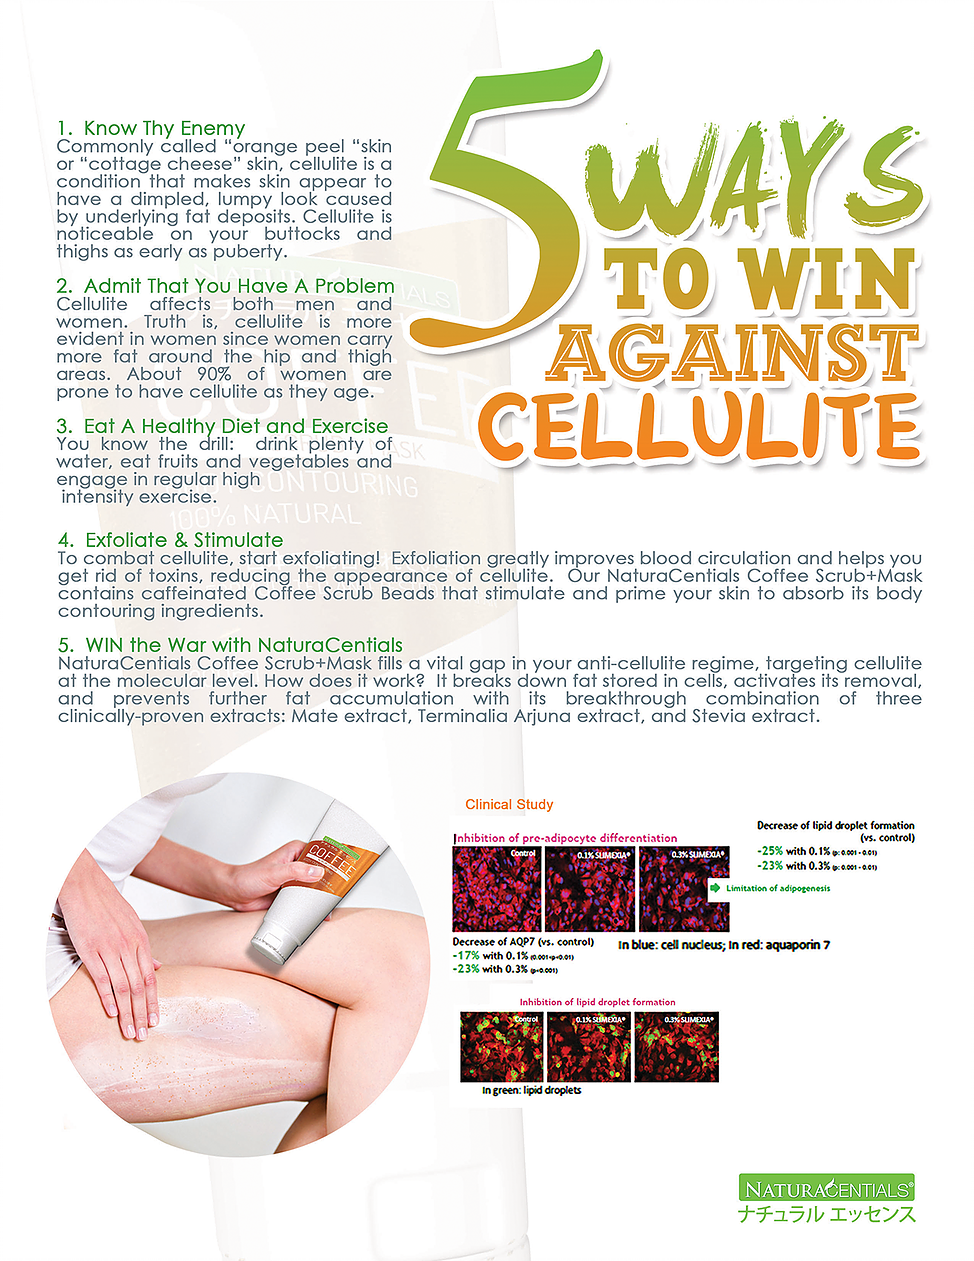 5-ways-to-win-against-cellulite